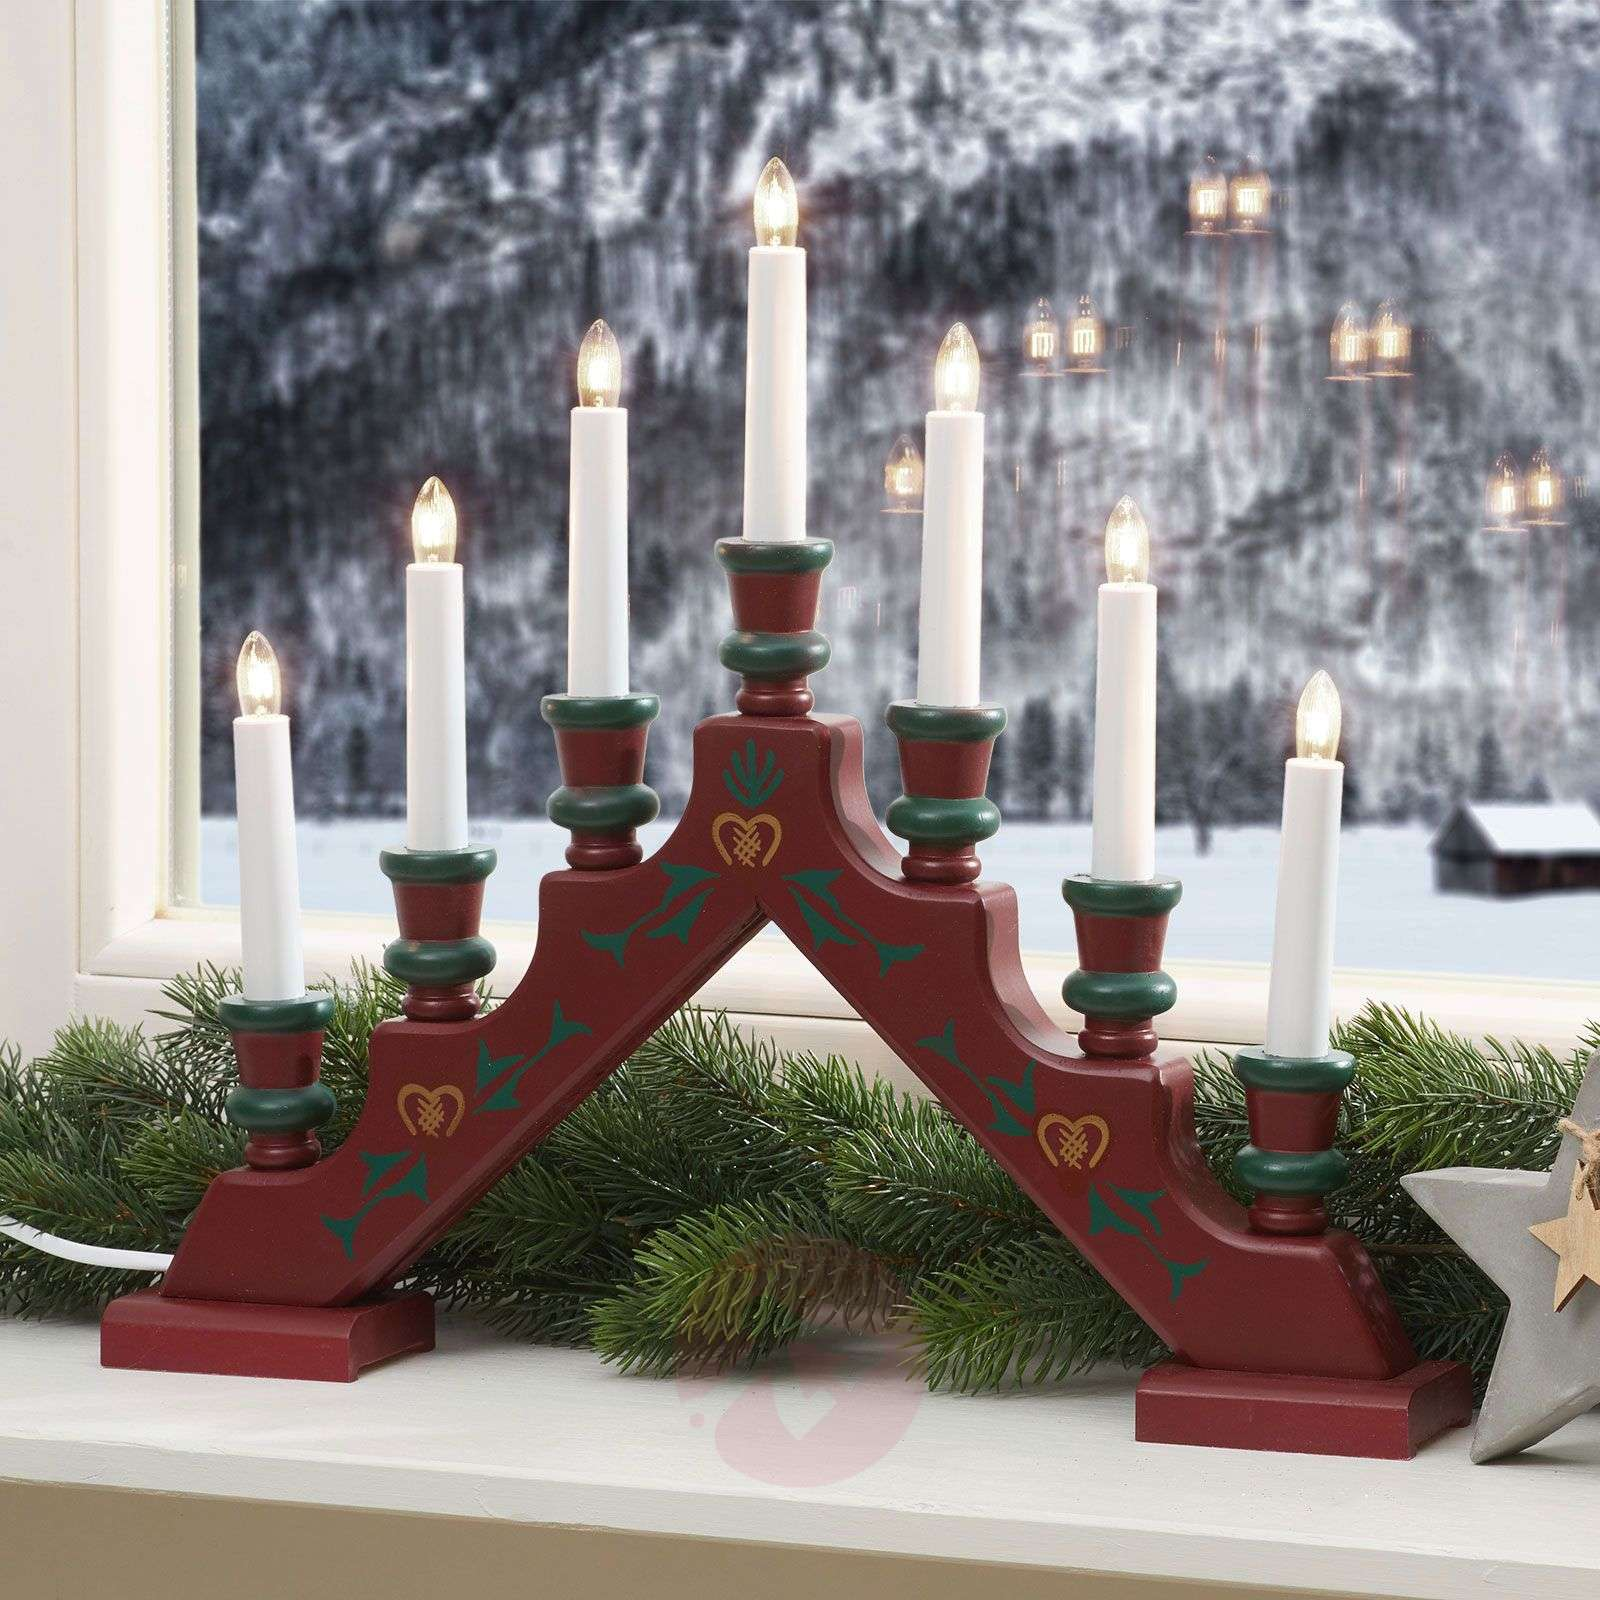 Seven-light red candle arch Sara Tradition-1522380-01